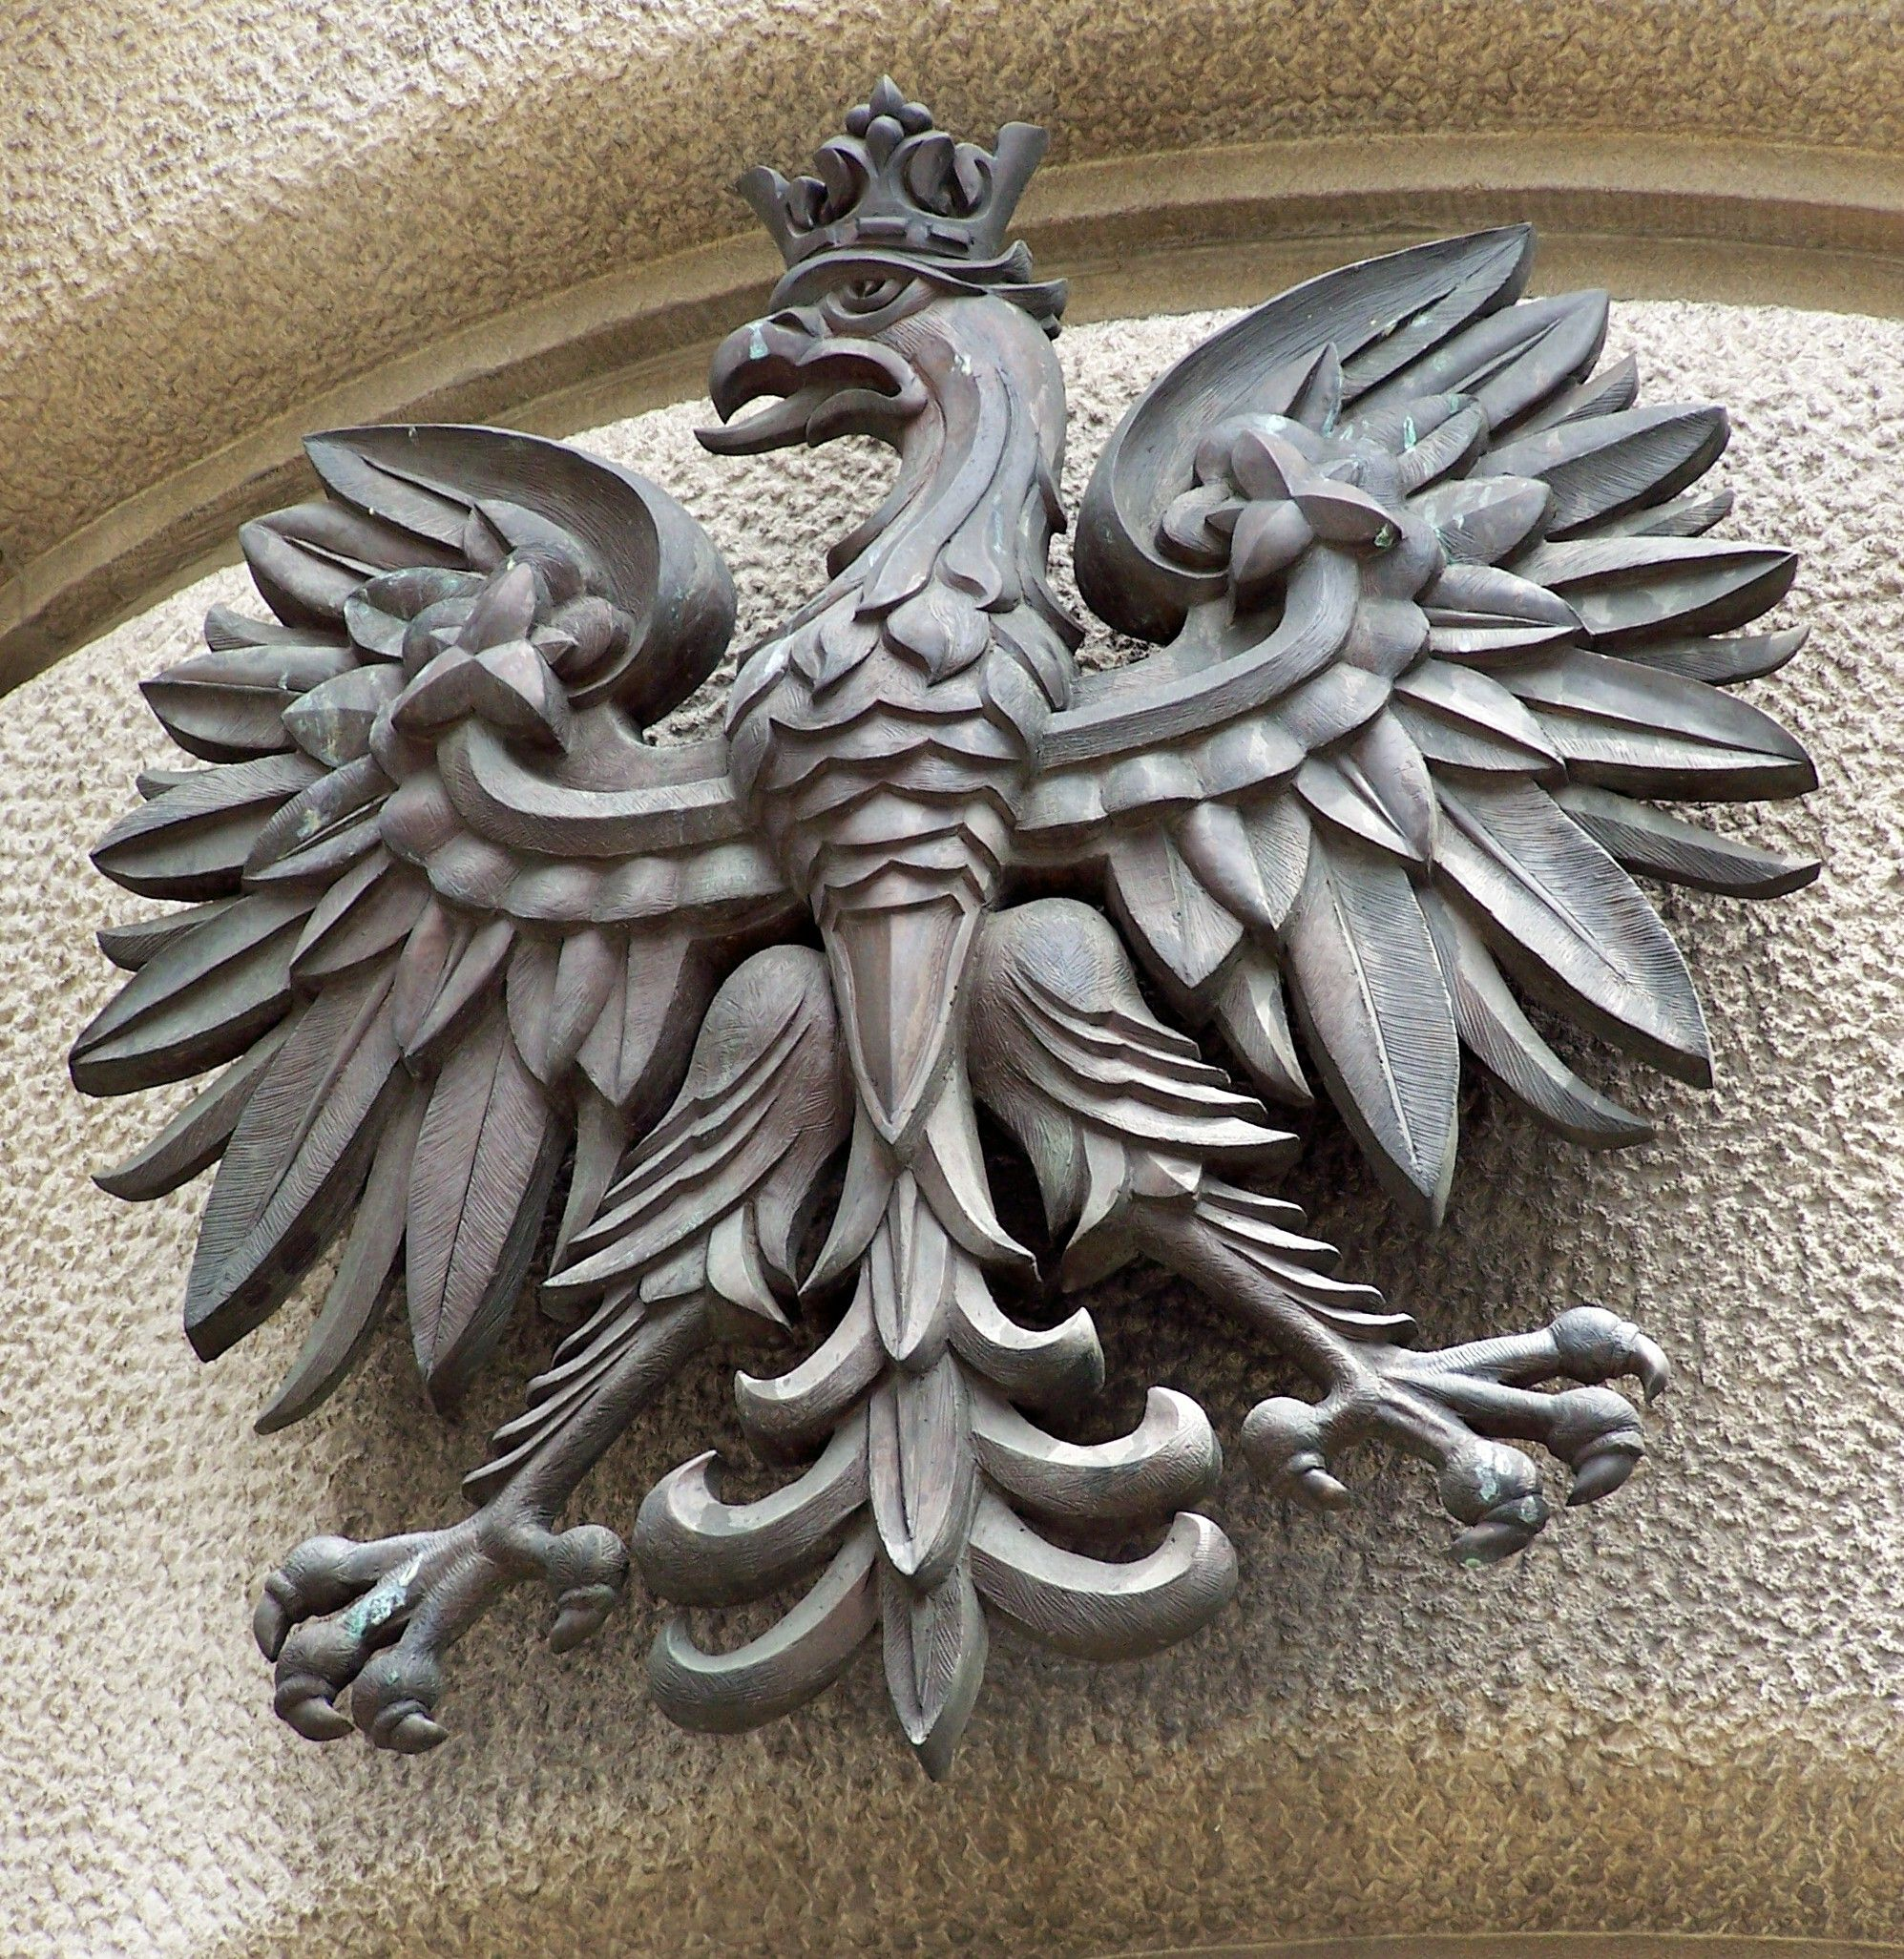 A white eagle is polands official crest and most known symbol a white eagle is polands official crest and most known symbol meaning victory biocorpaavc Choice Image